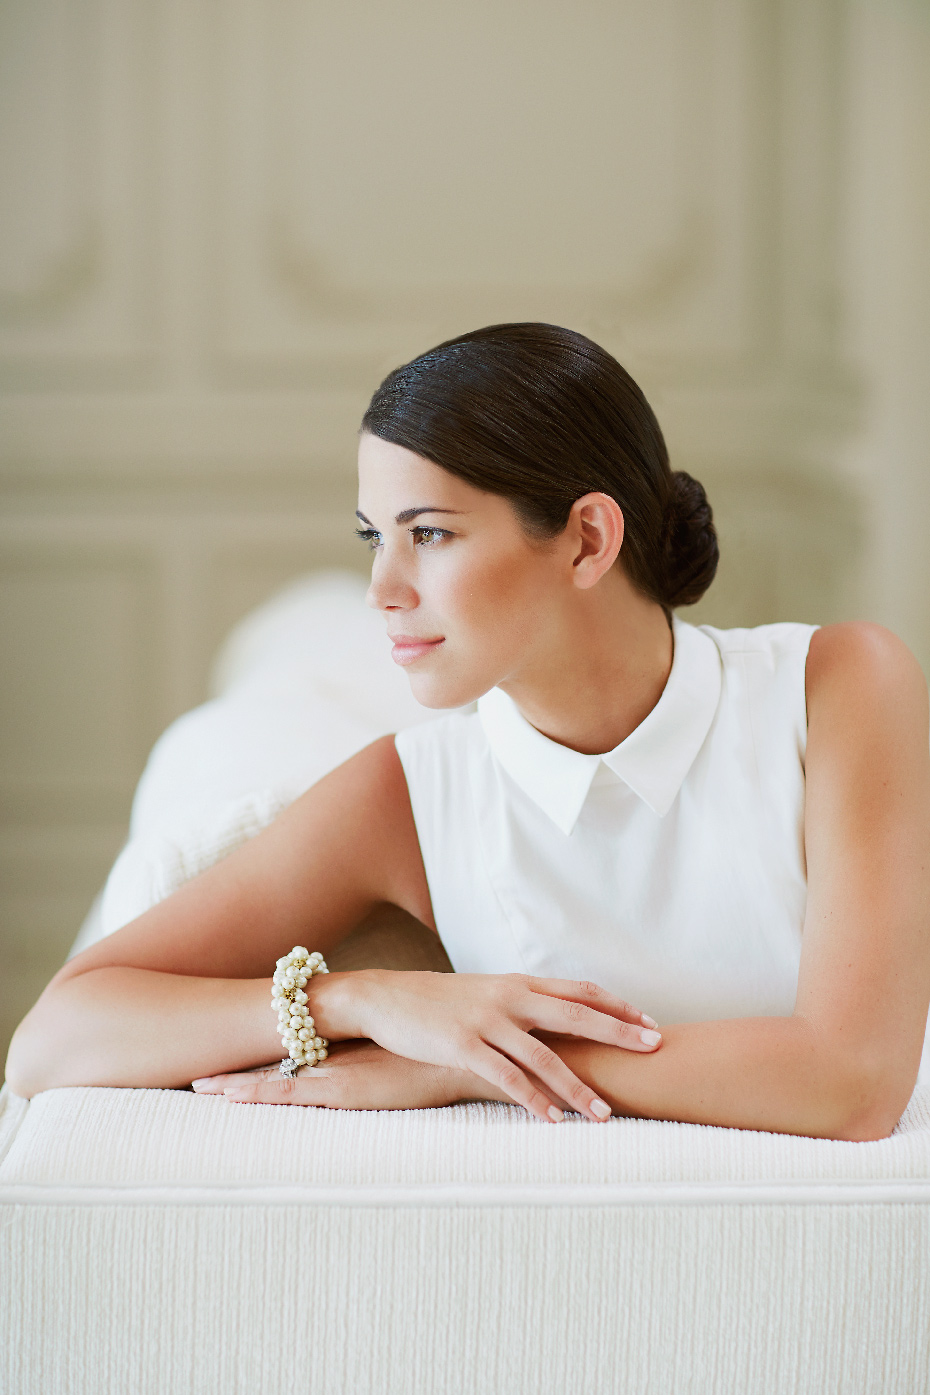 Stacey Van Berkel Photography I Young elegant woman dressed in white I Bernhardt Furniture